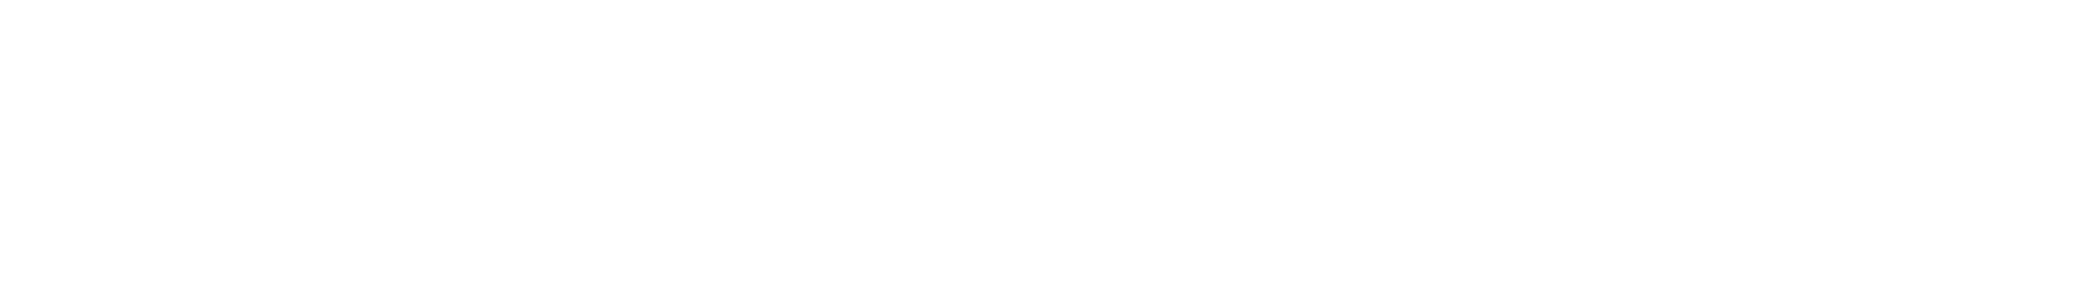 dotted line arrow3.png